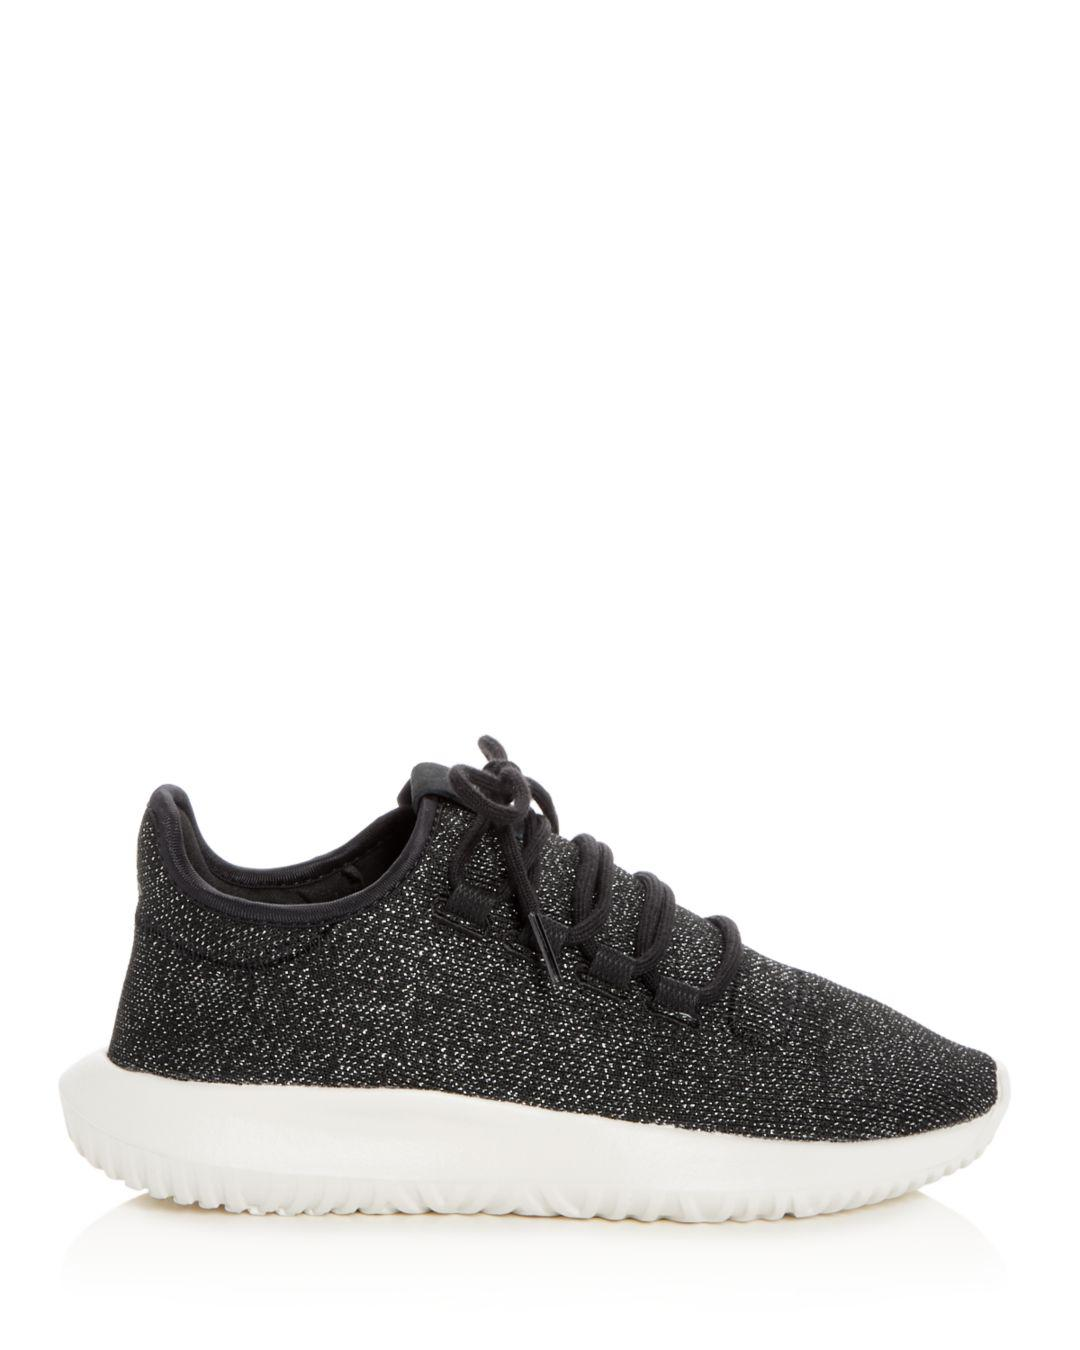 fee953dc2fb828 Lyst - adidas Women s Tubular Shadow Glitter Knit Lace Up Sneakers in Black  - Save 67%